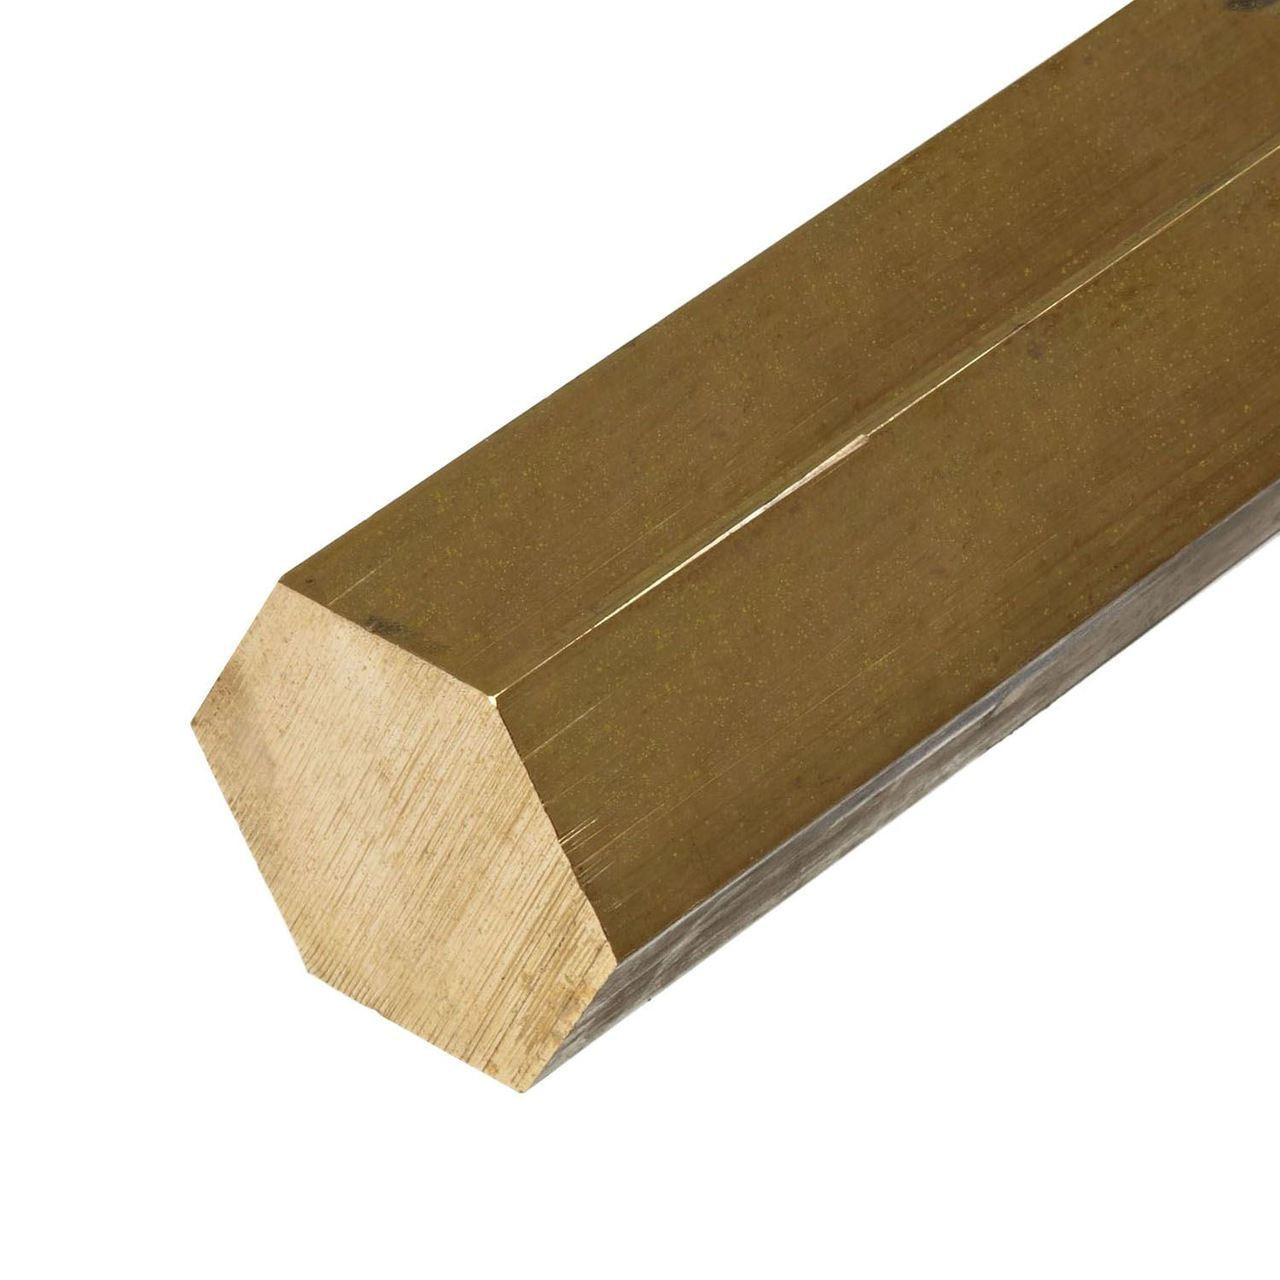 C360 Brass Hexagon Bar, 1.125 (1-1/8 inch) x 18 inches